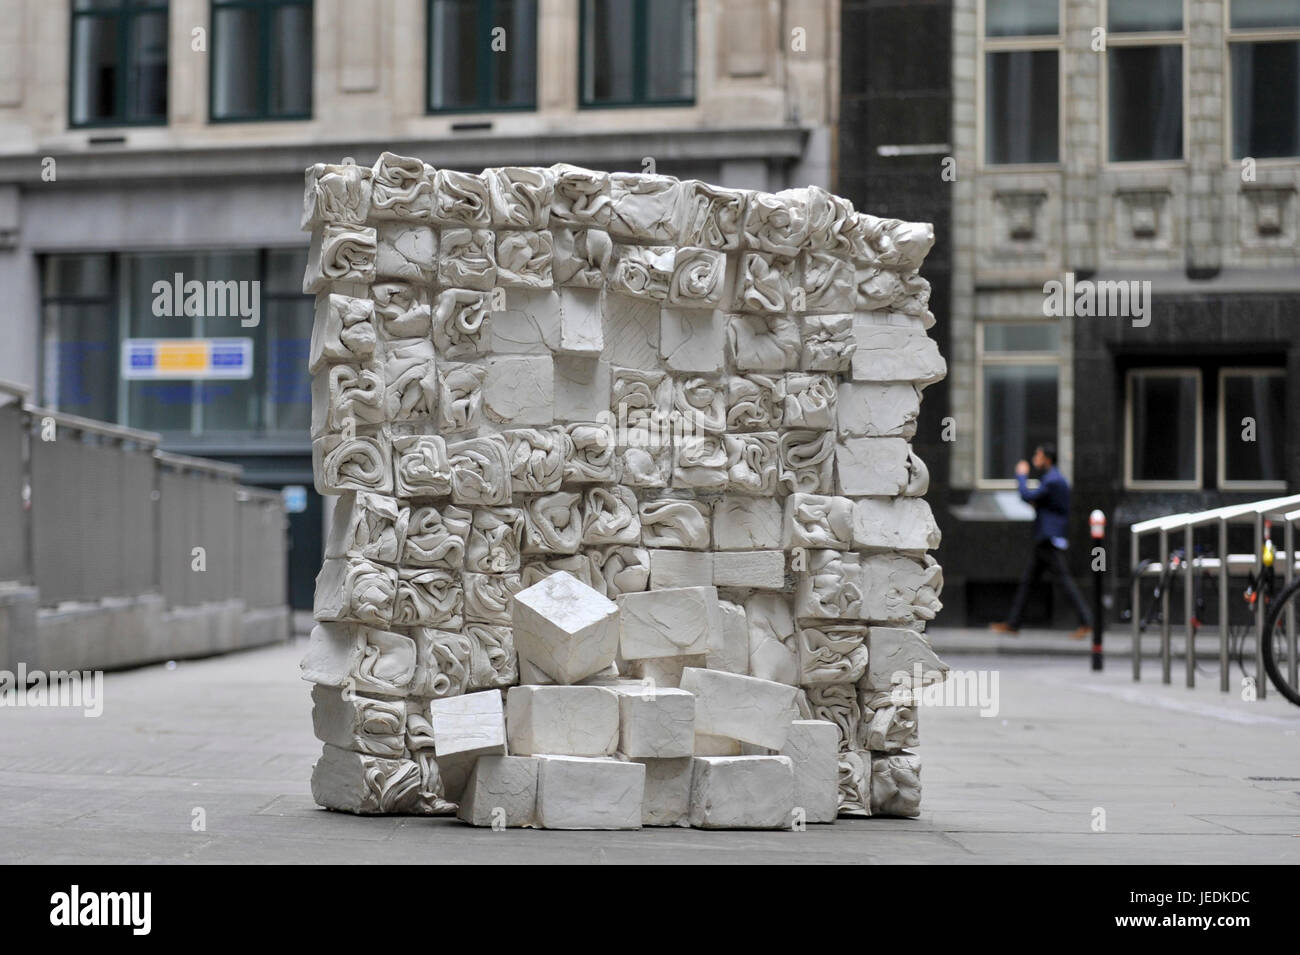 London, UK.  24 June 2017. 'Reminiscence', 2017, by Fernando Casasempere.  The artwork is on display as - Stock Image